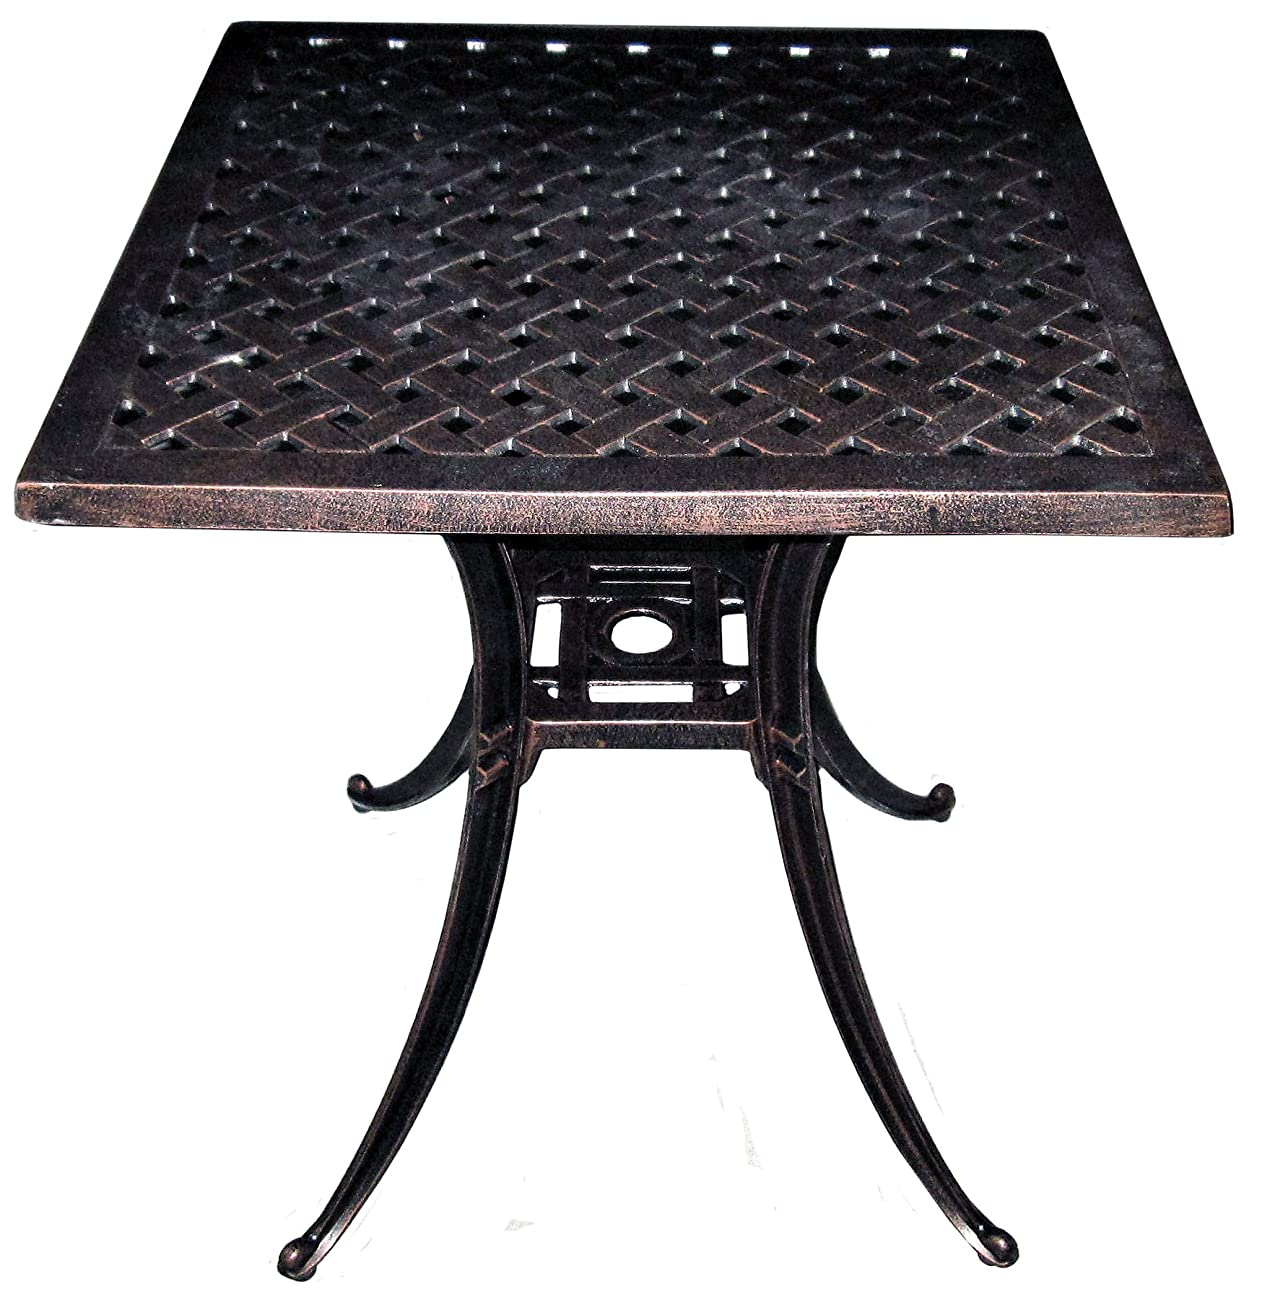 American Trading Company Weave Design Antique Bronze Solid Cast Aluminum Square Table, 24